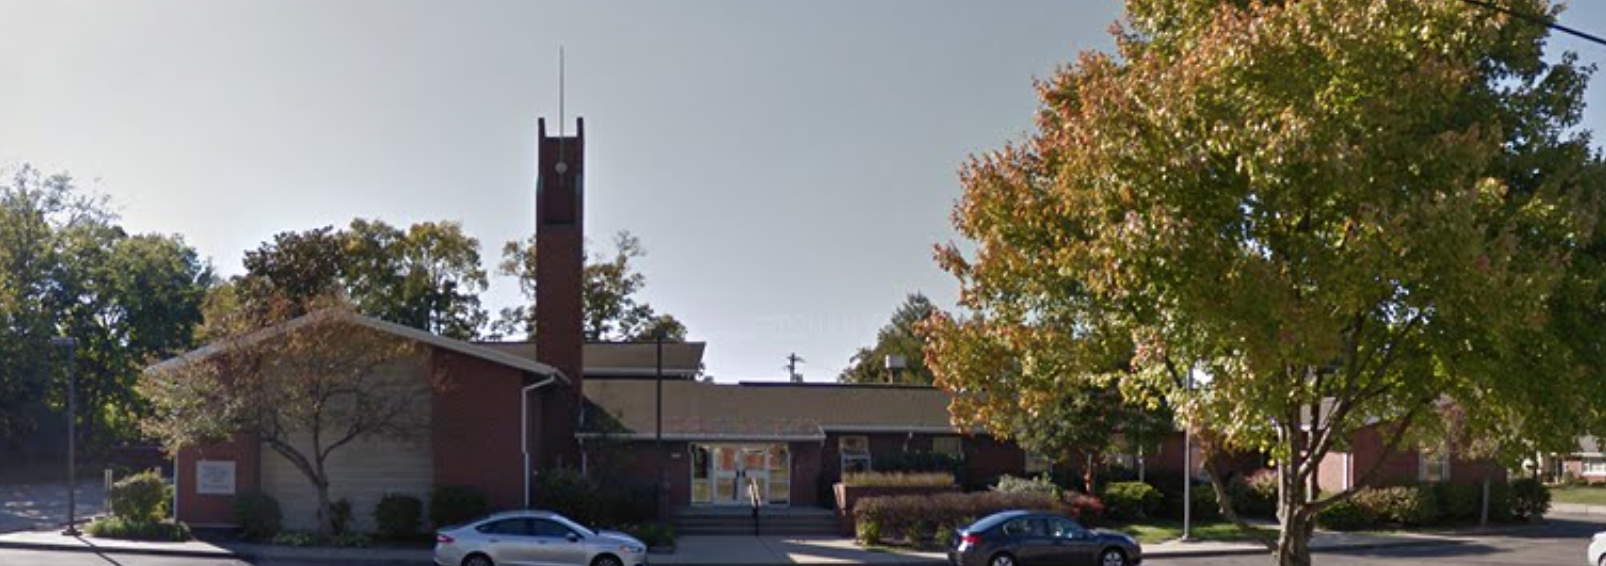 Hamilton Ohio Ward Chapel where I was baptized